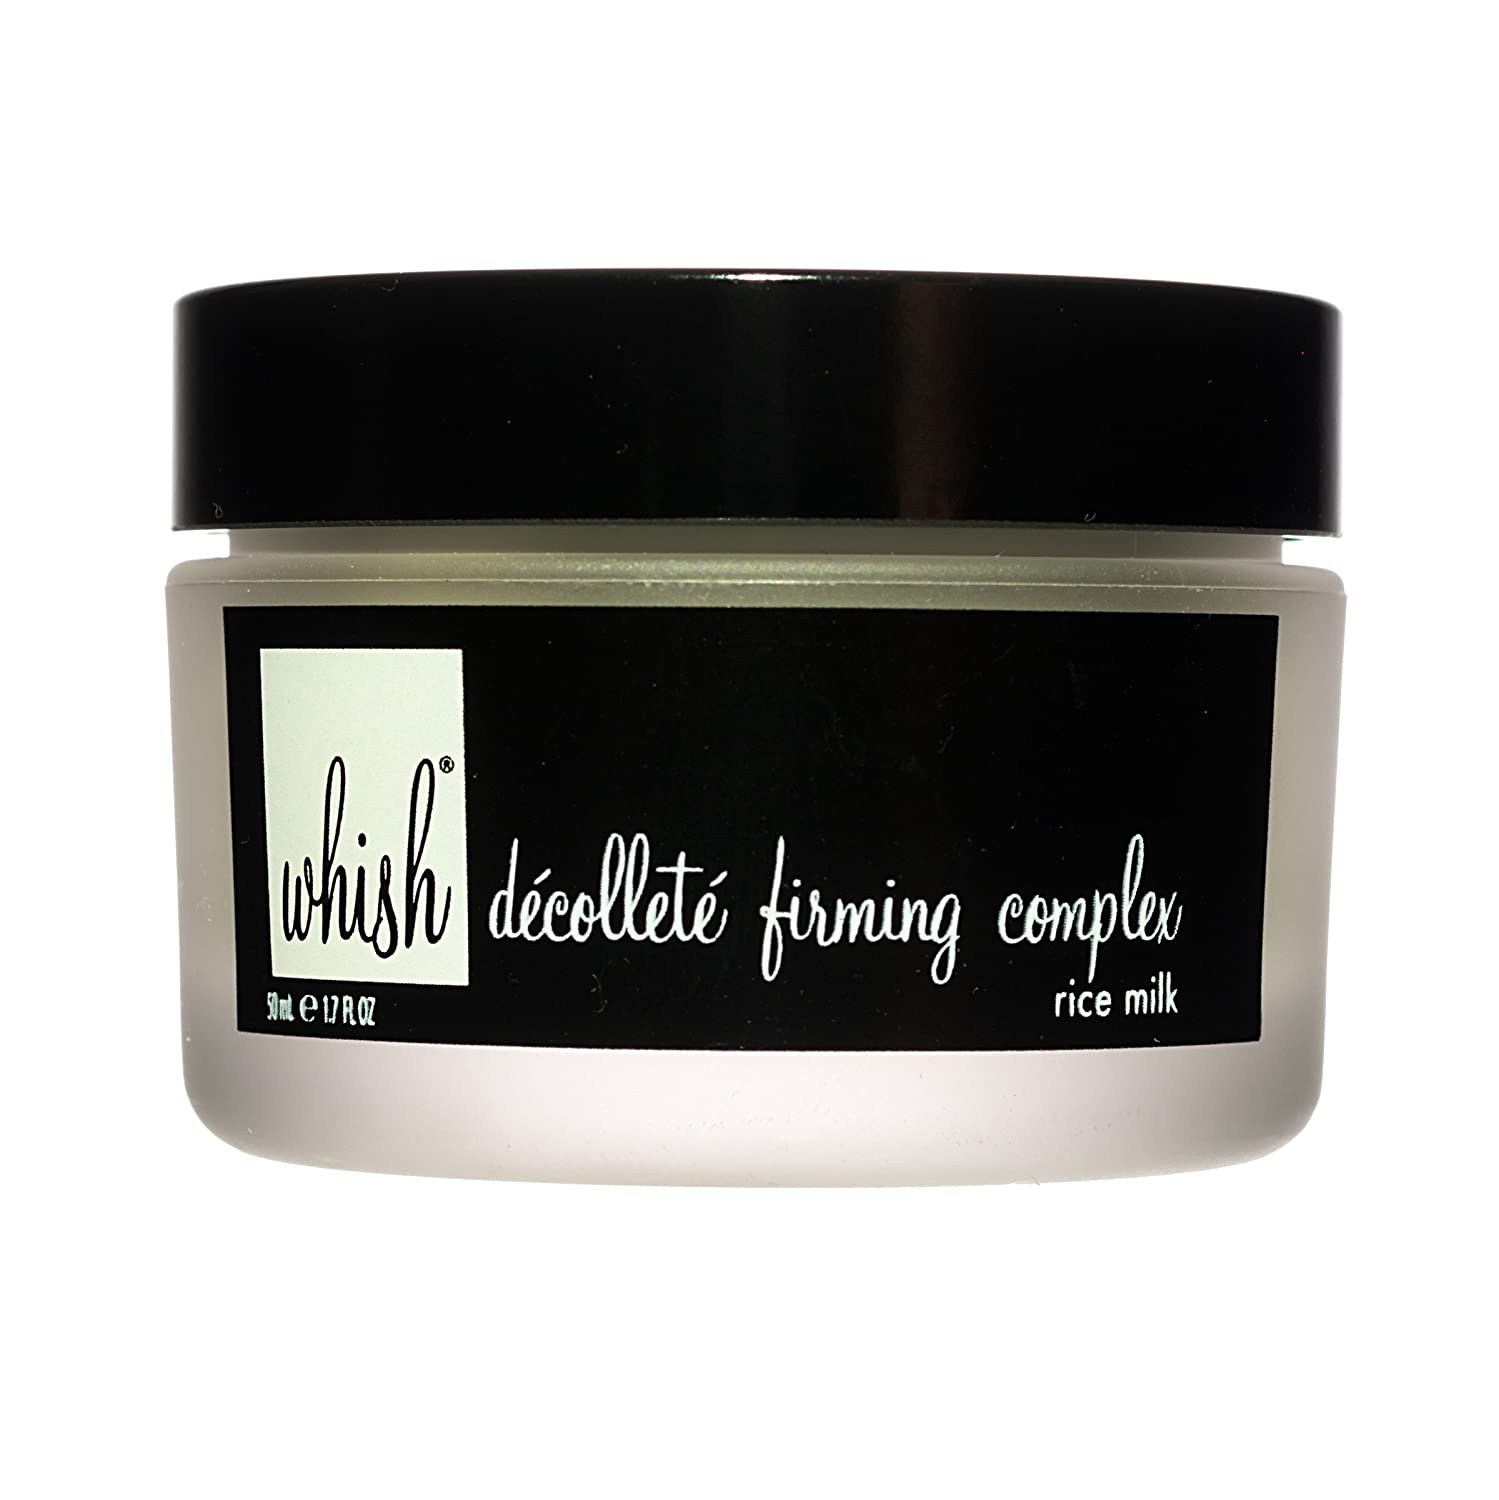 Whish - Rice Milk Decollete & Neck Firming Complex - Smoother Look & Feel - Intense Firming Boost - Reduces the Appearance of Fine Lines & Wrinkles - Vitamin C - Intense Hydration - 1.7 oz jar rmdfc1101